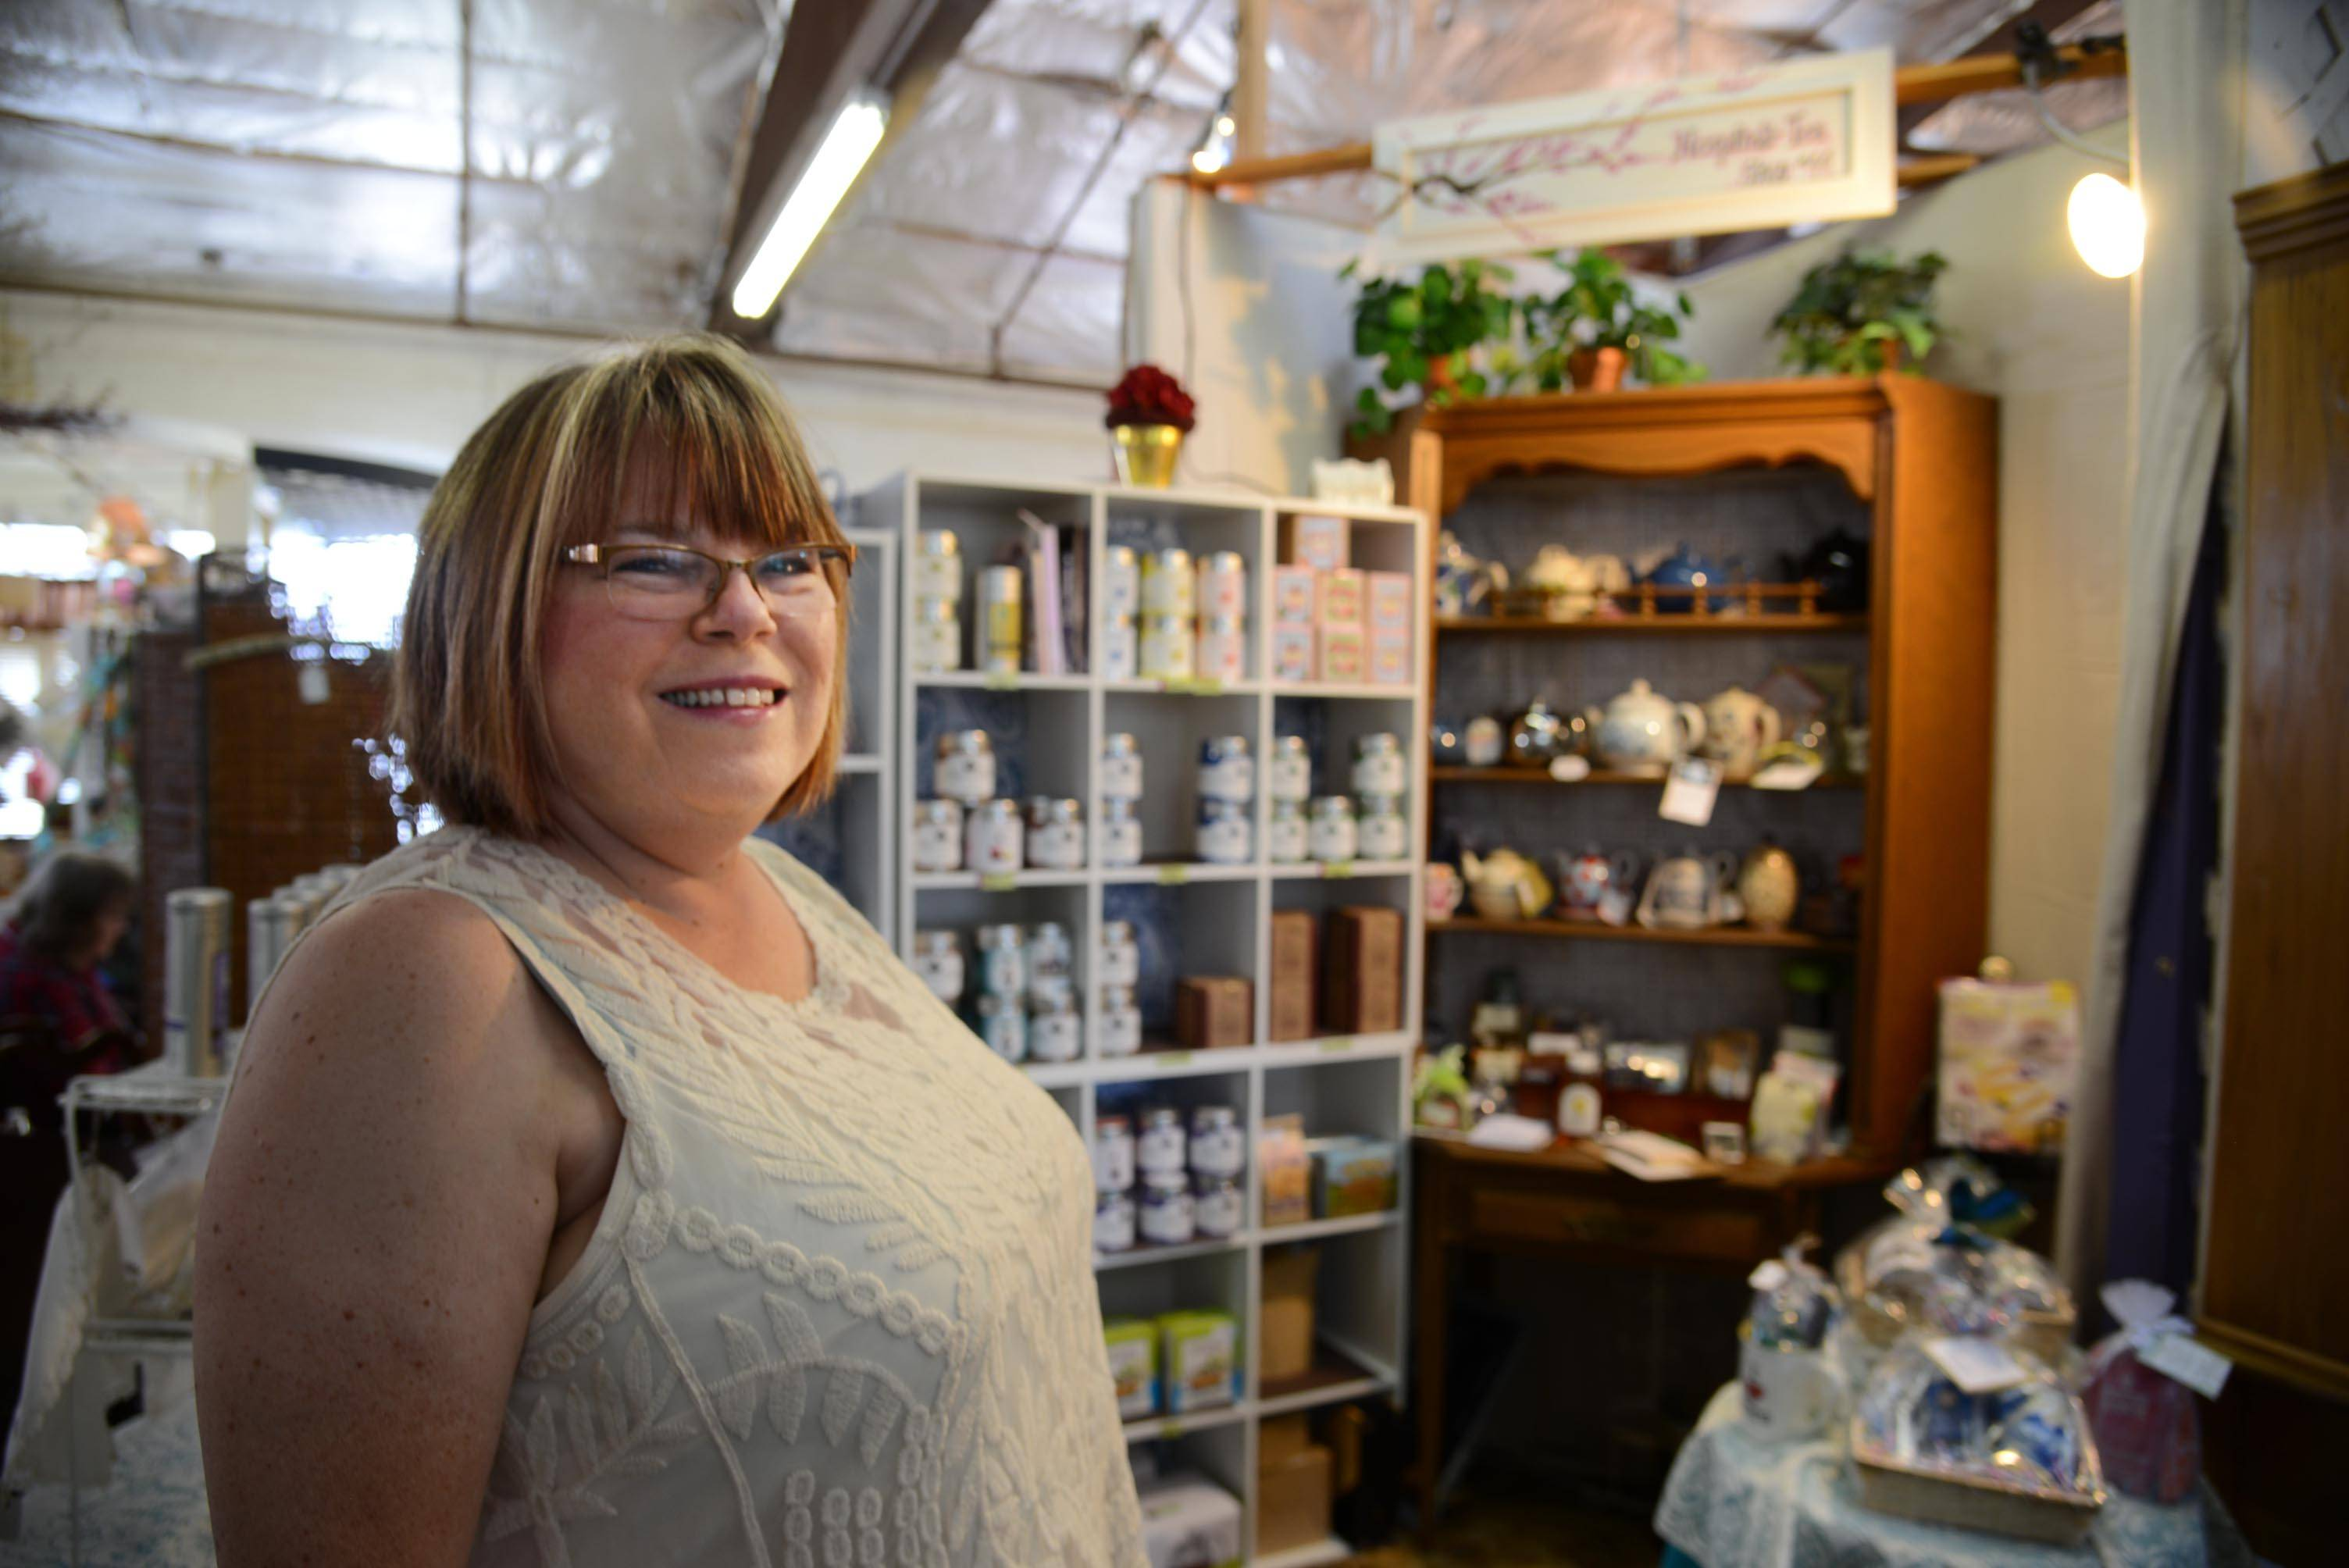 Elgin small business program prompts action